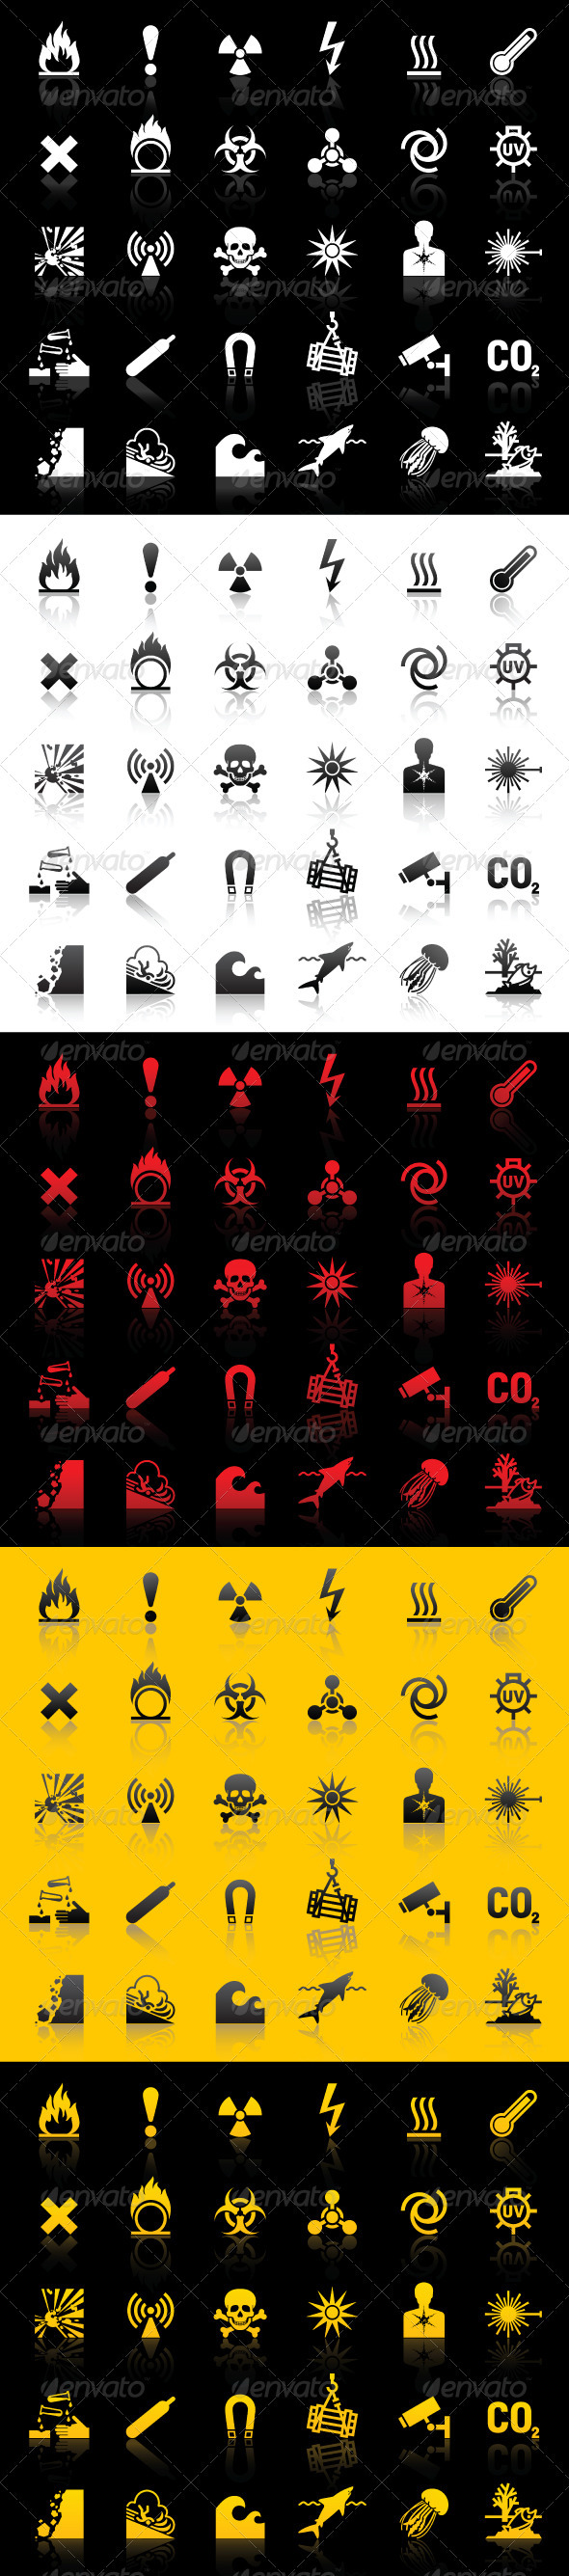 Symbols - Hazard warnings - Man-made objects Objects